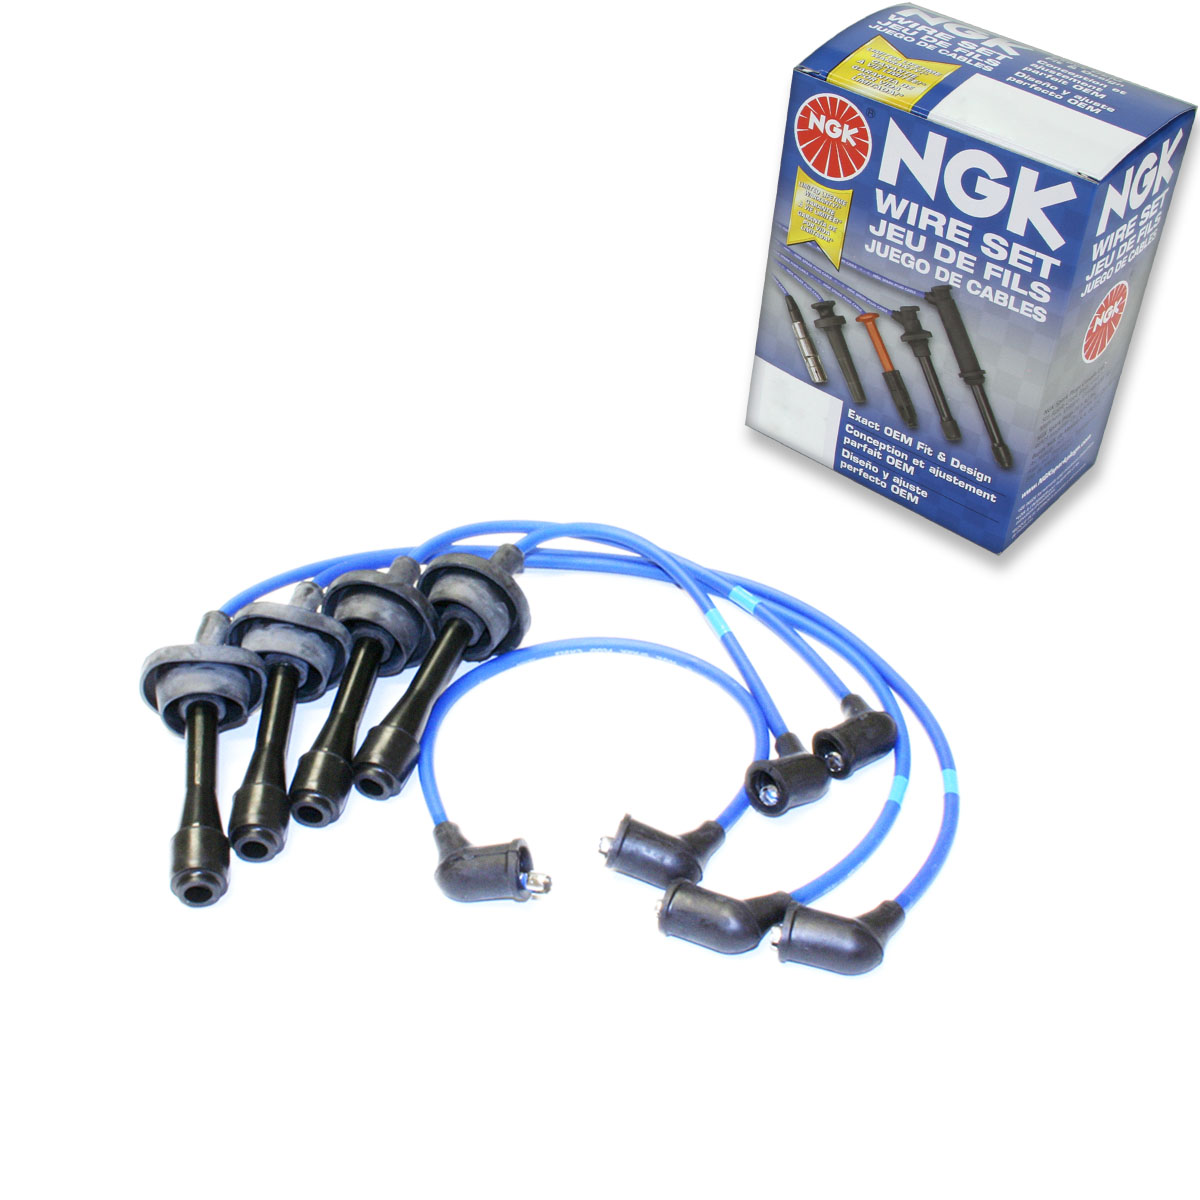 For NGK Spark Plug Wires Set Coupe Sedan for Toyota Corolla 1971-1982